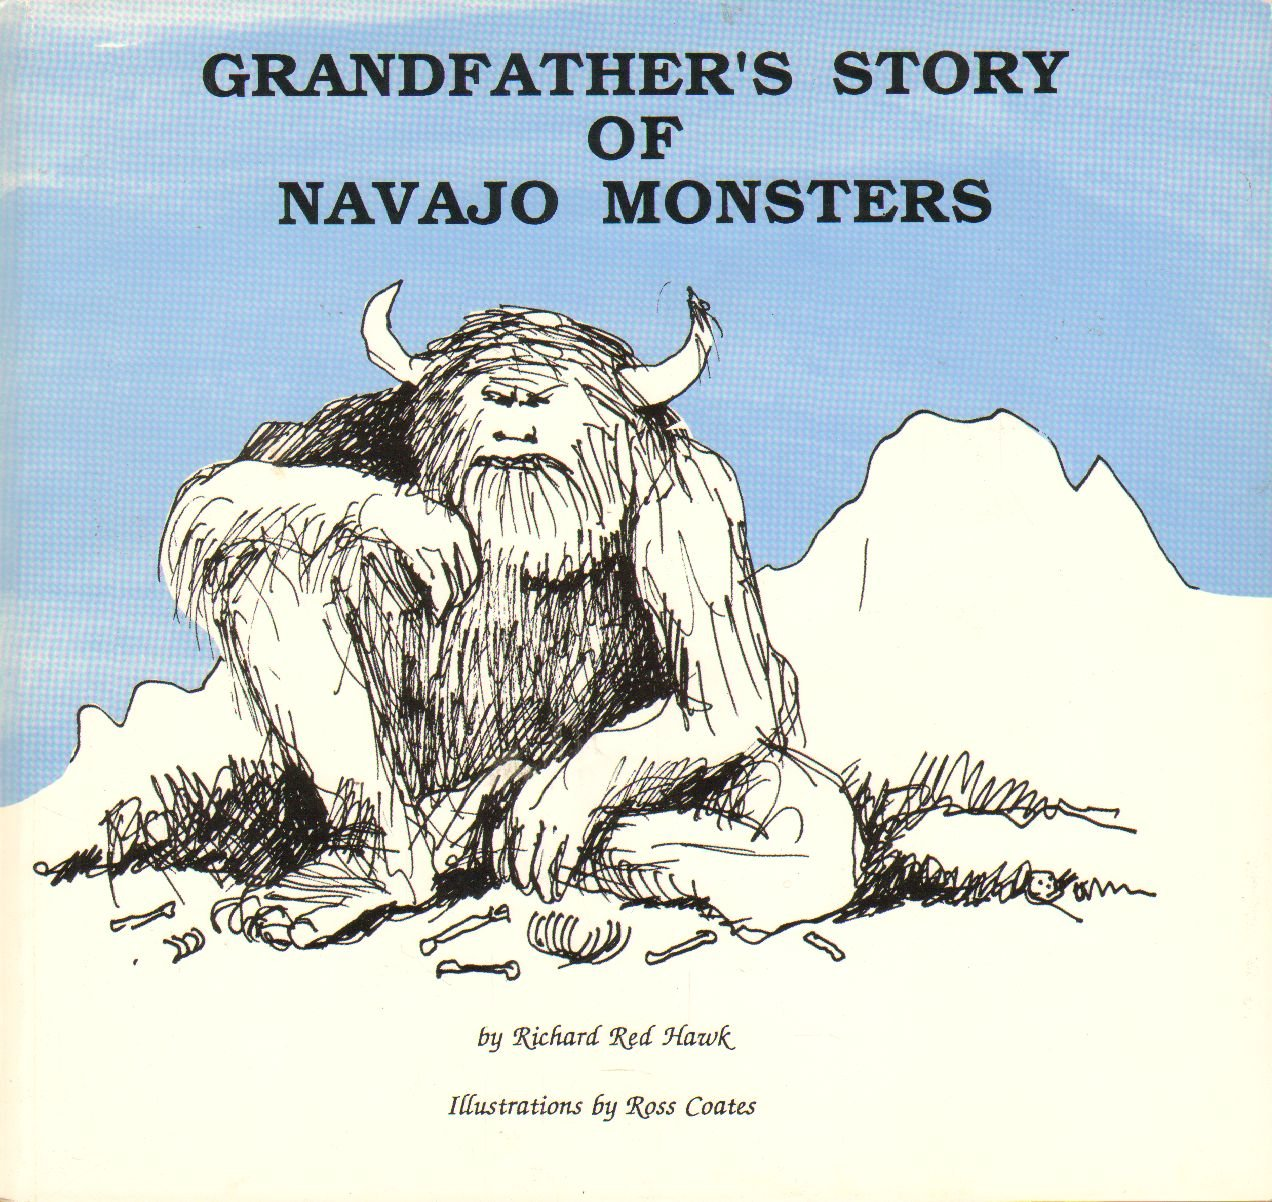 Grandfathers Story of Navajo Monsters